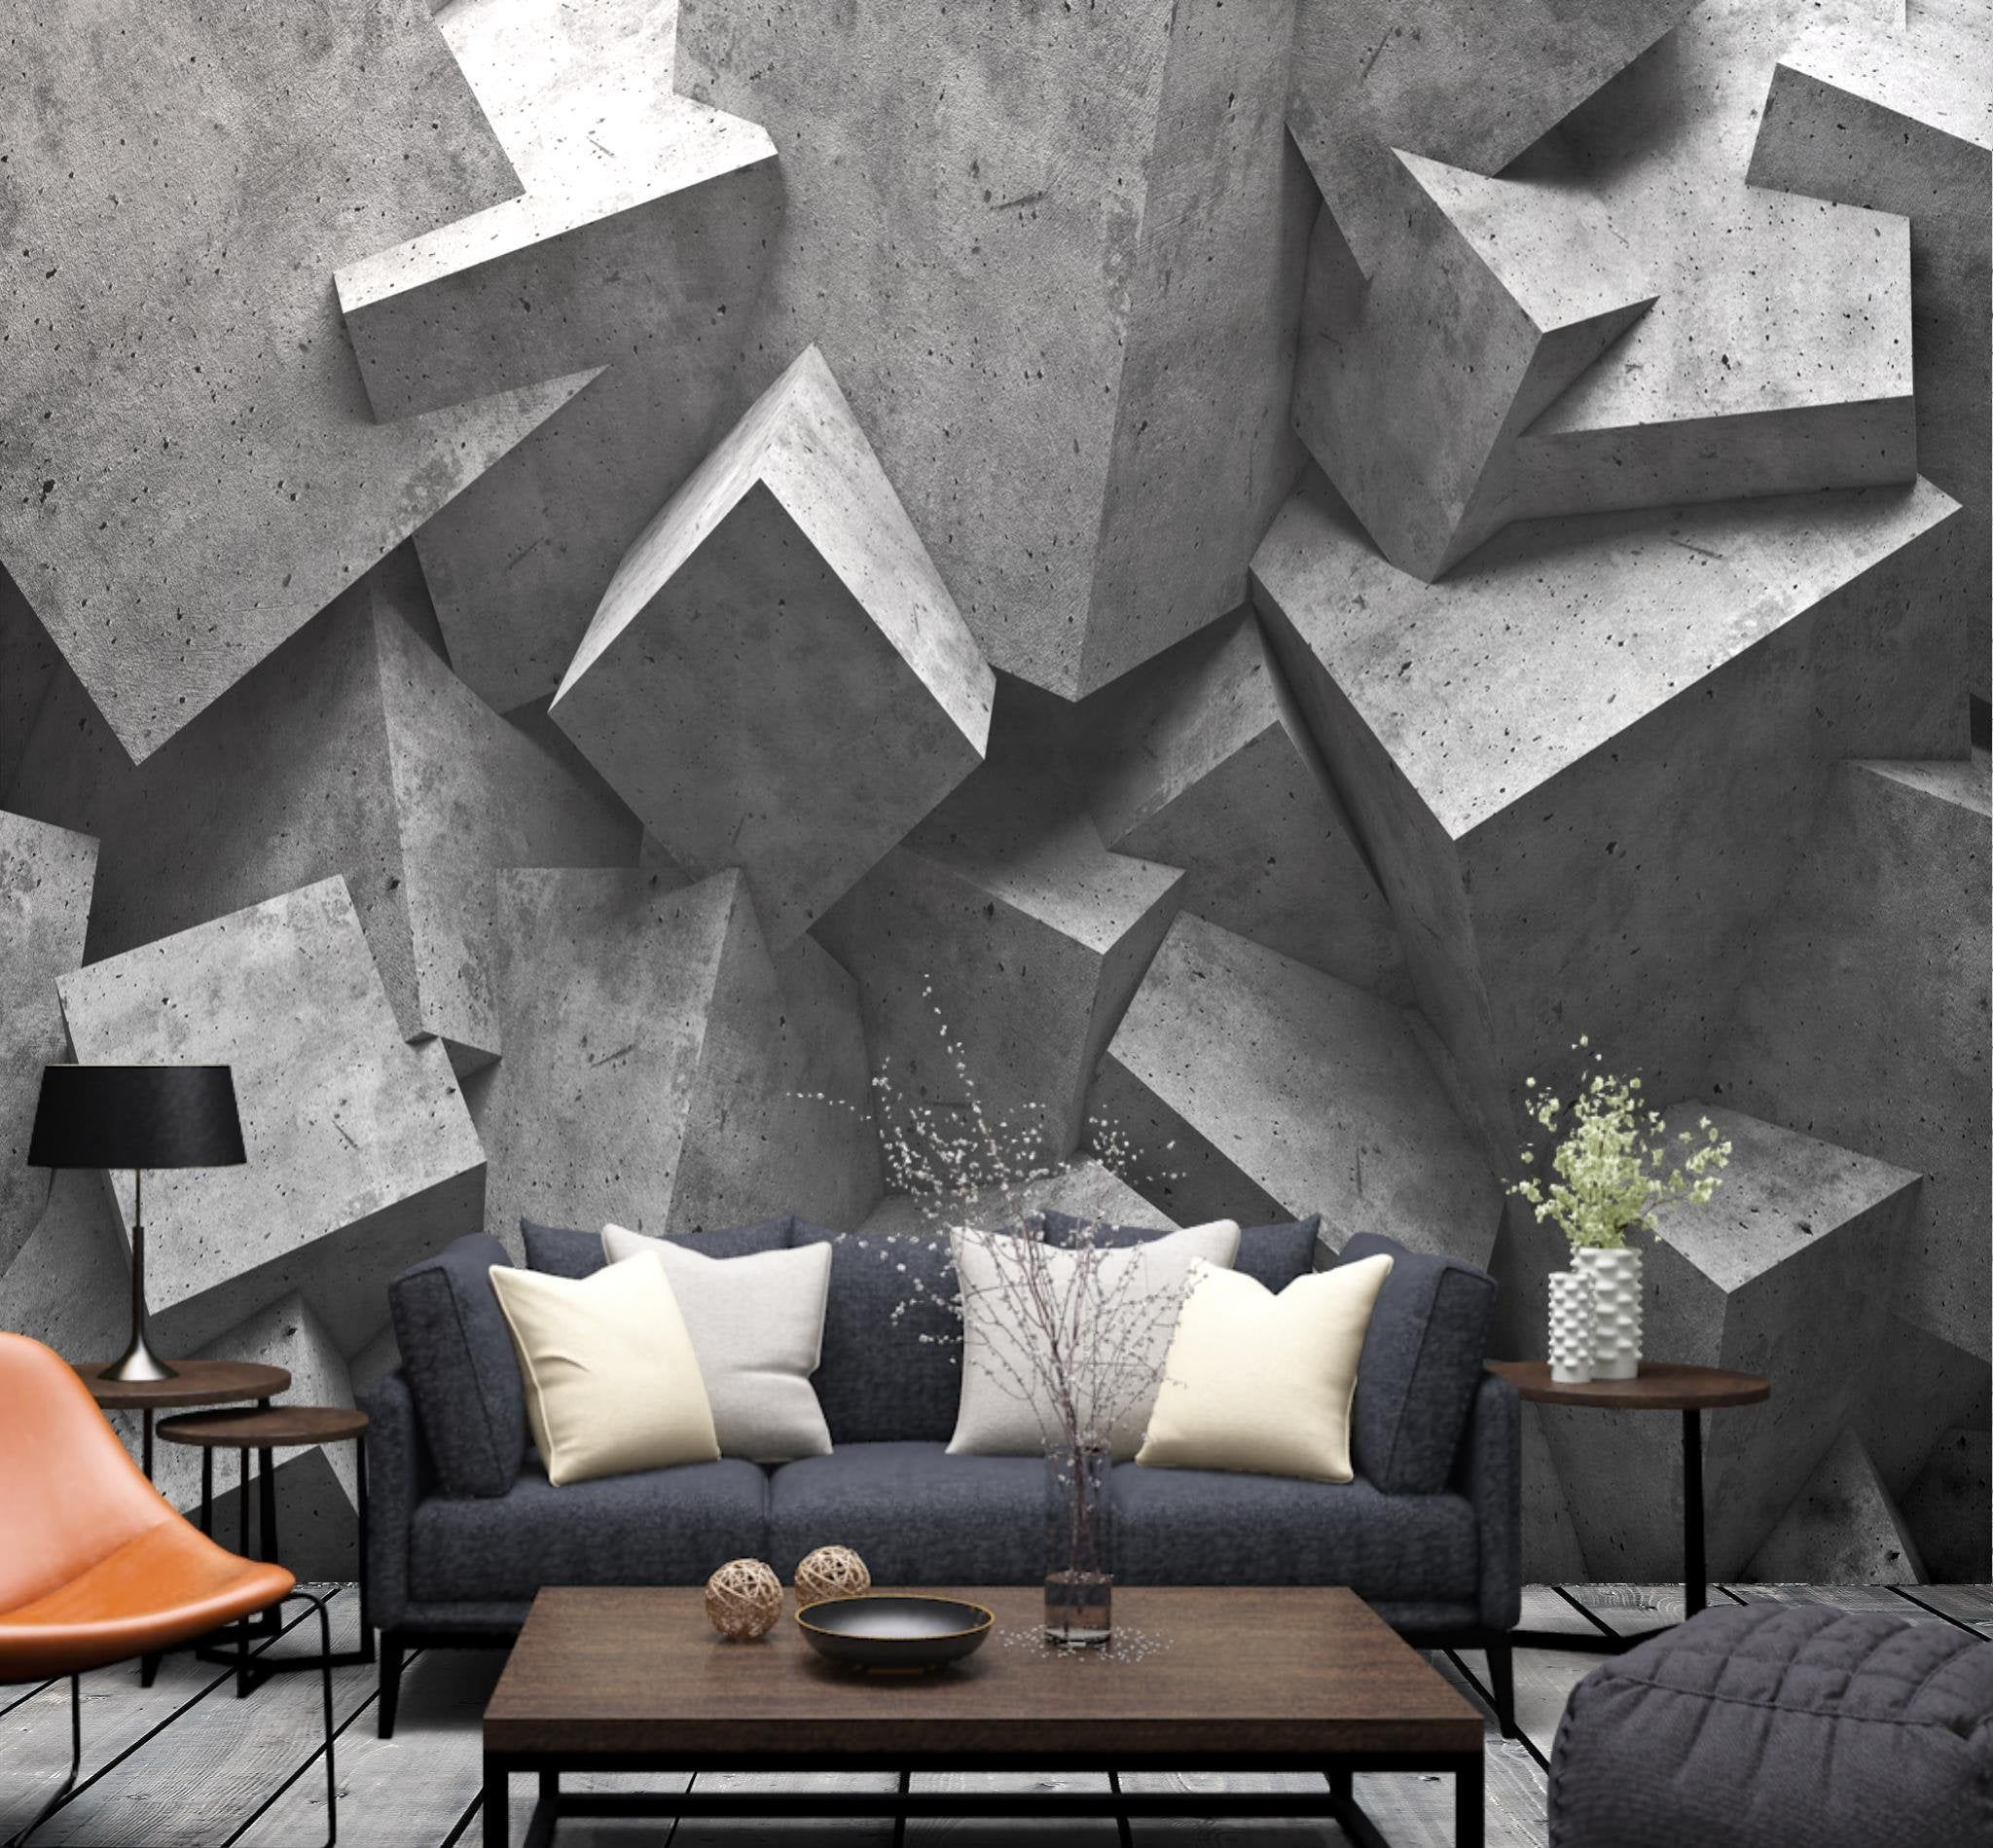 Abstract Wallpaper Self Adhesive Sticker Brick Peel And Stick Etsy In 2021 Wallpaper Living Room Abstract Wallpaper Living Room Wall